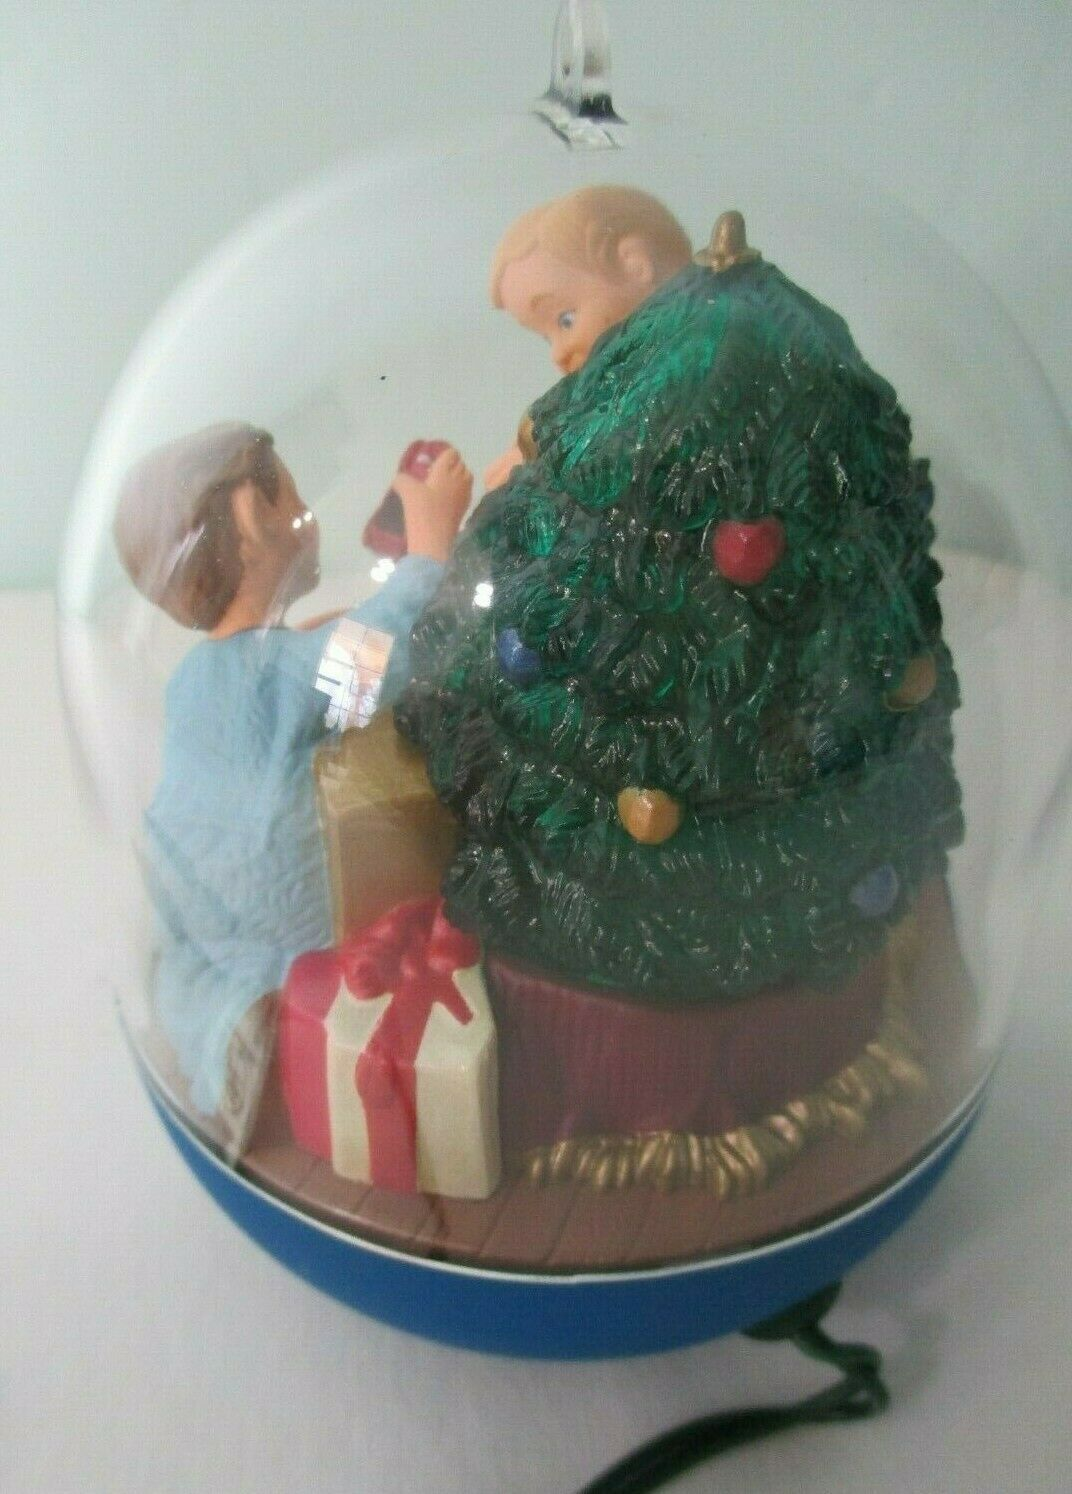 My First Hot Wheels Light and Motion Hallmark Magic Ornament 1995 Gently Used image 5